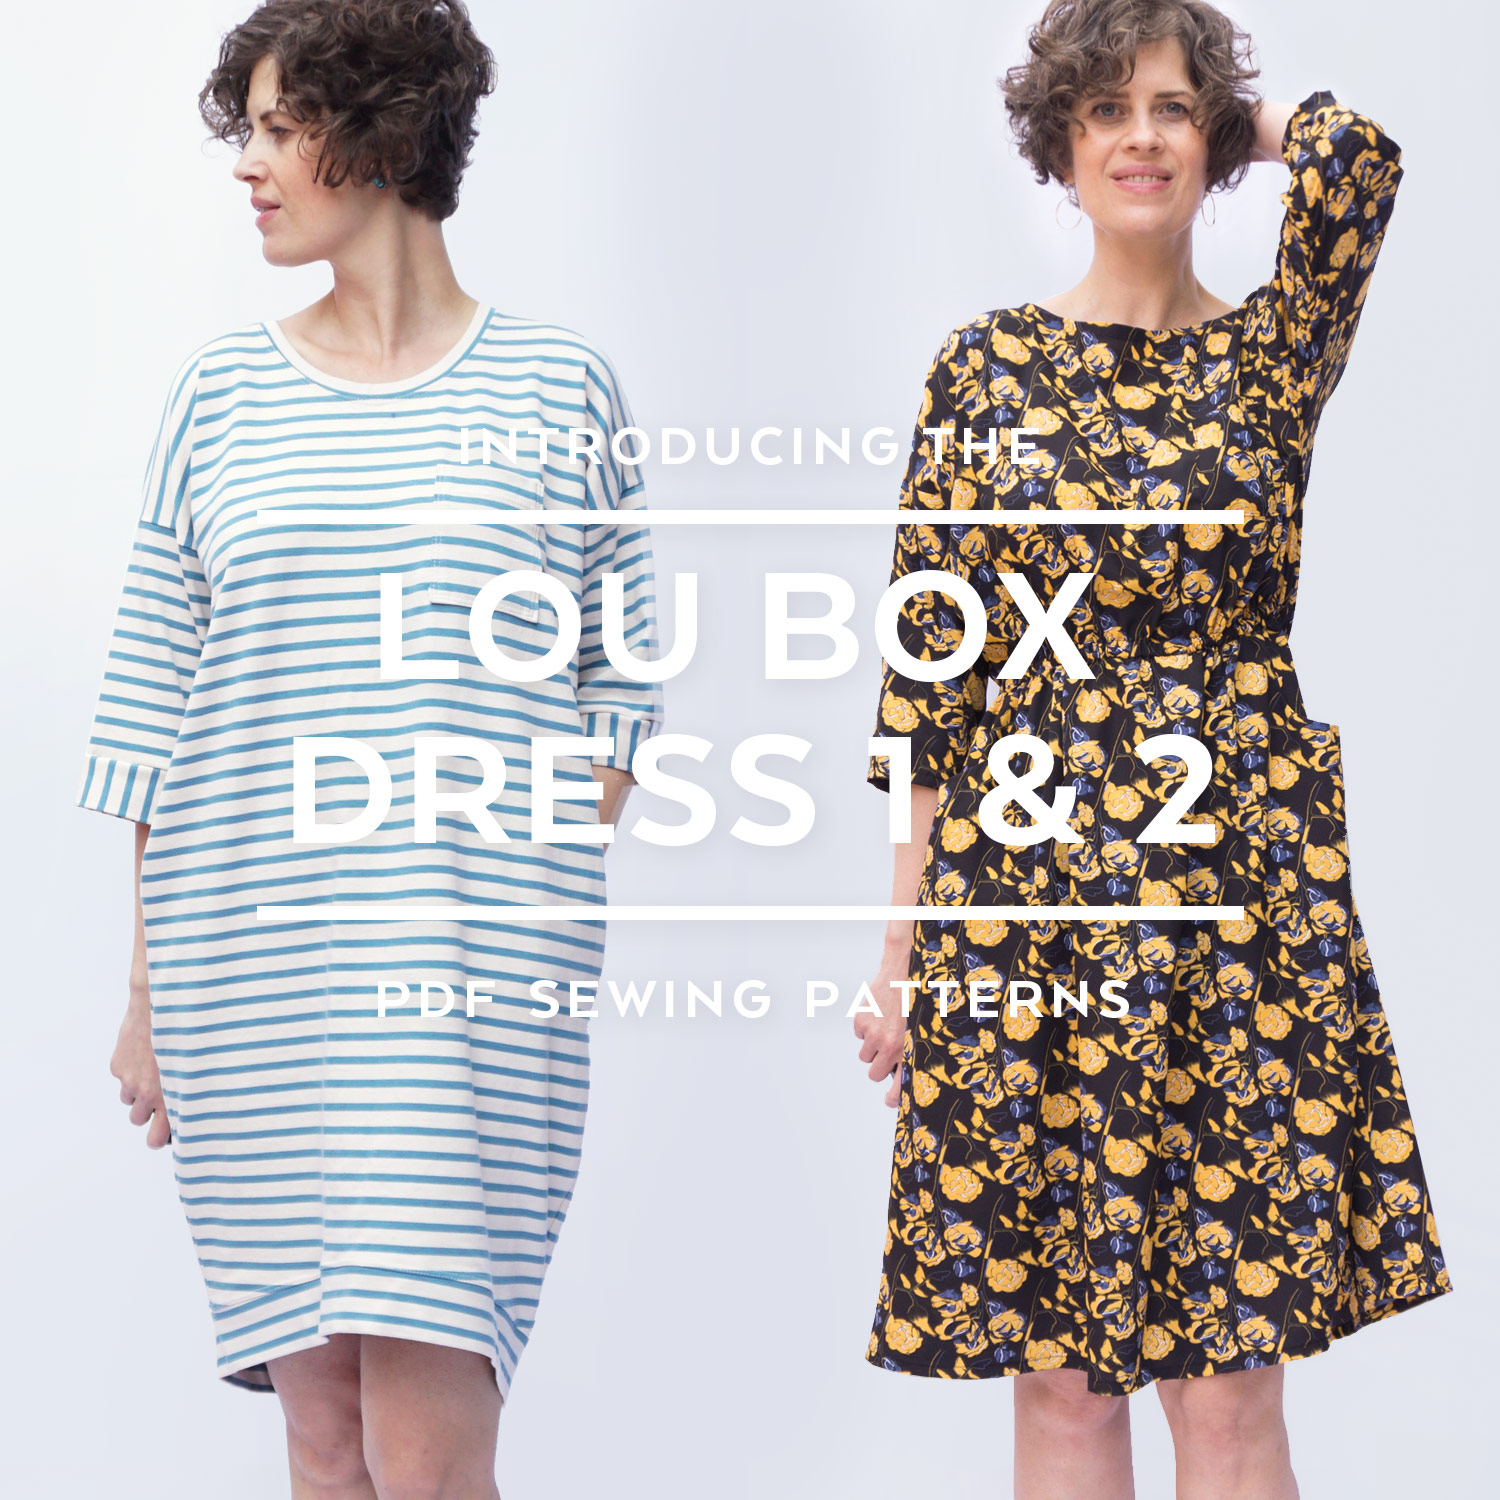 Introducing the Lou Box Dress 1 & 2 by Sew DIY